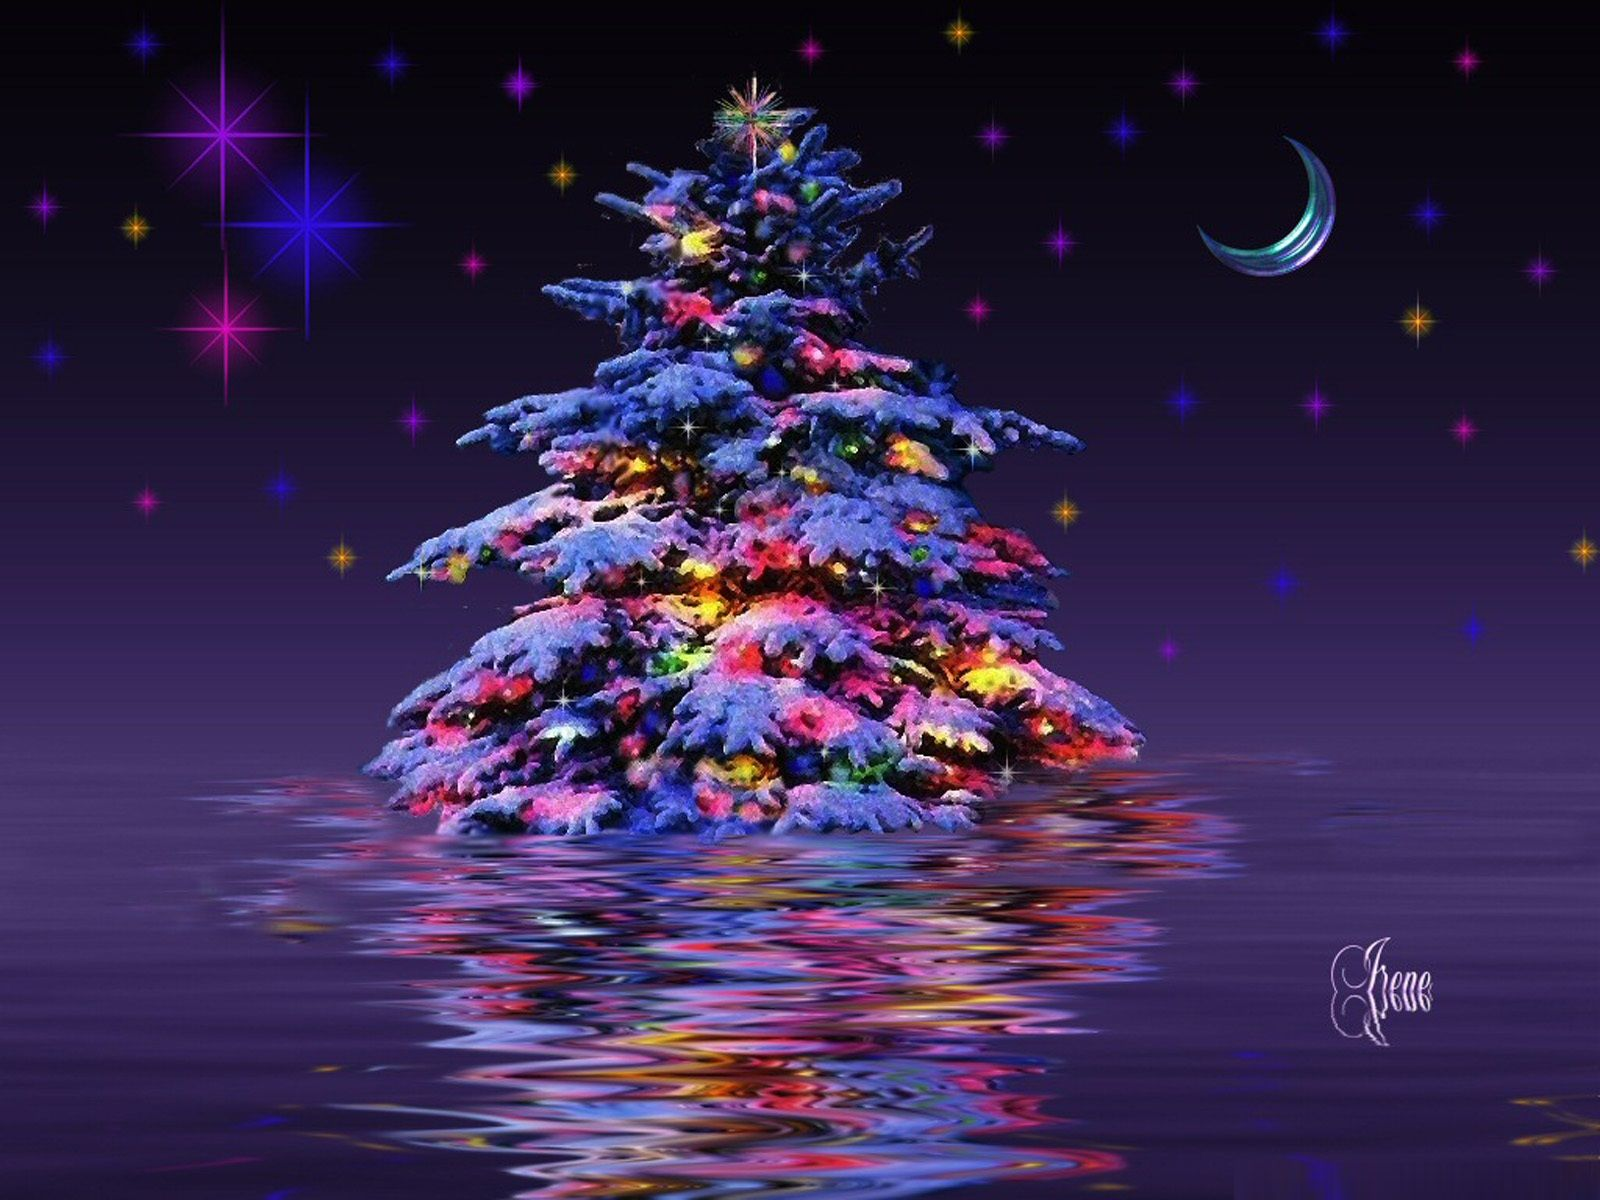 Merry Christmas 2015 3d Wallpapers L4lol Christmas Tree Pictures Animated Christmas Tree Christmas Tree Wallpaper